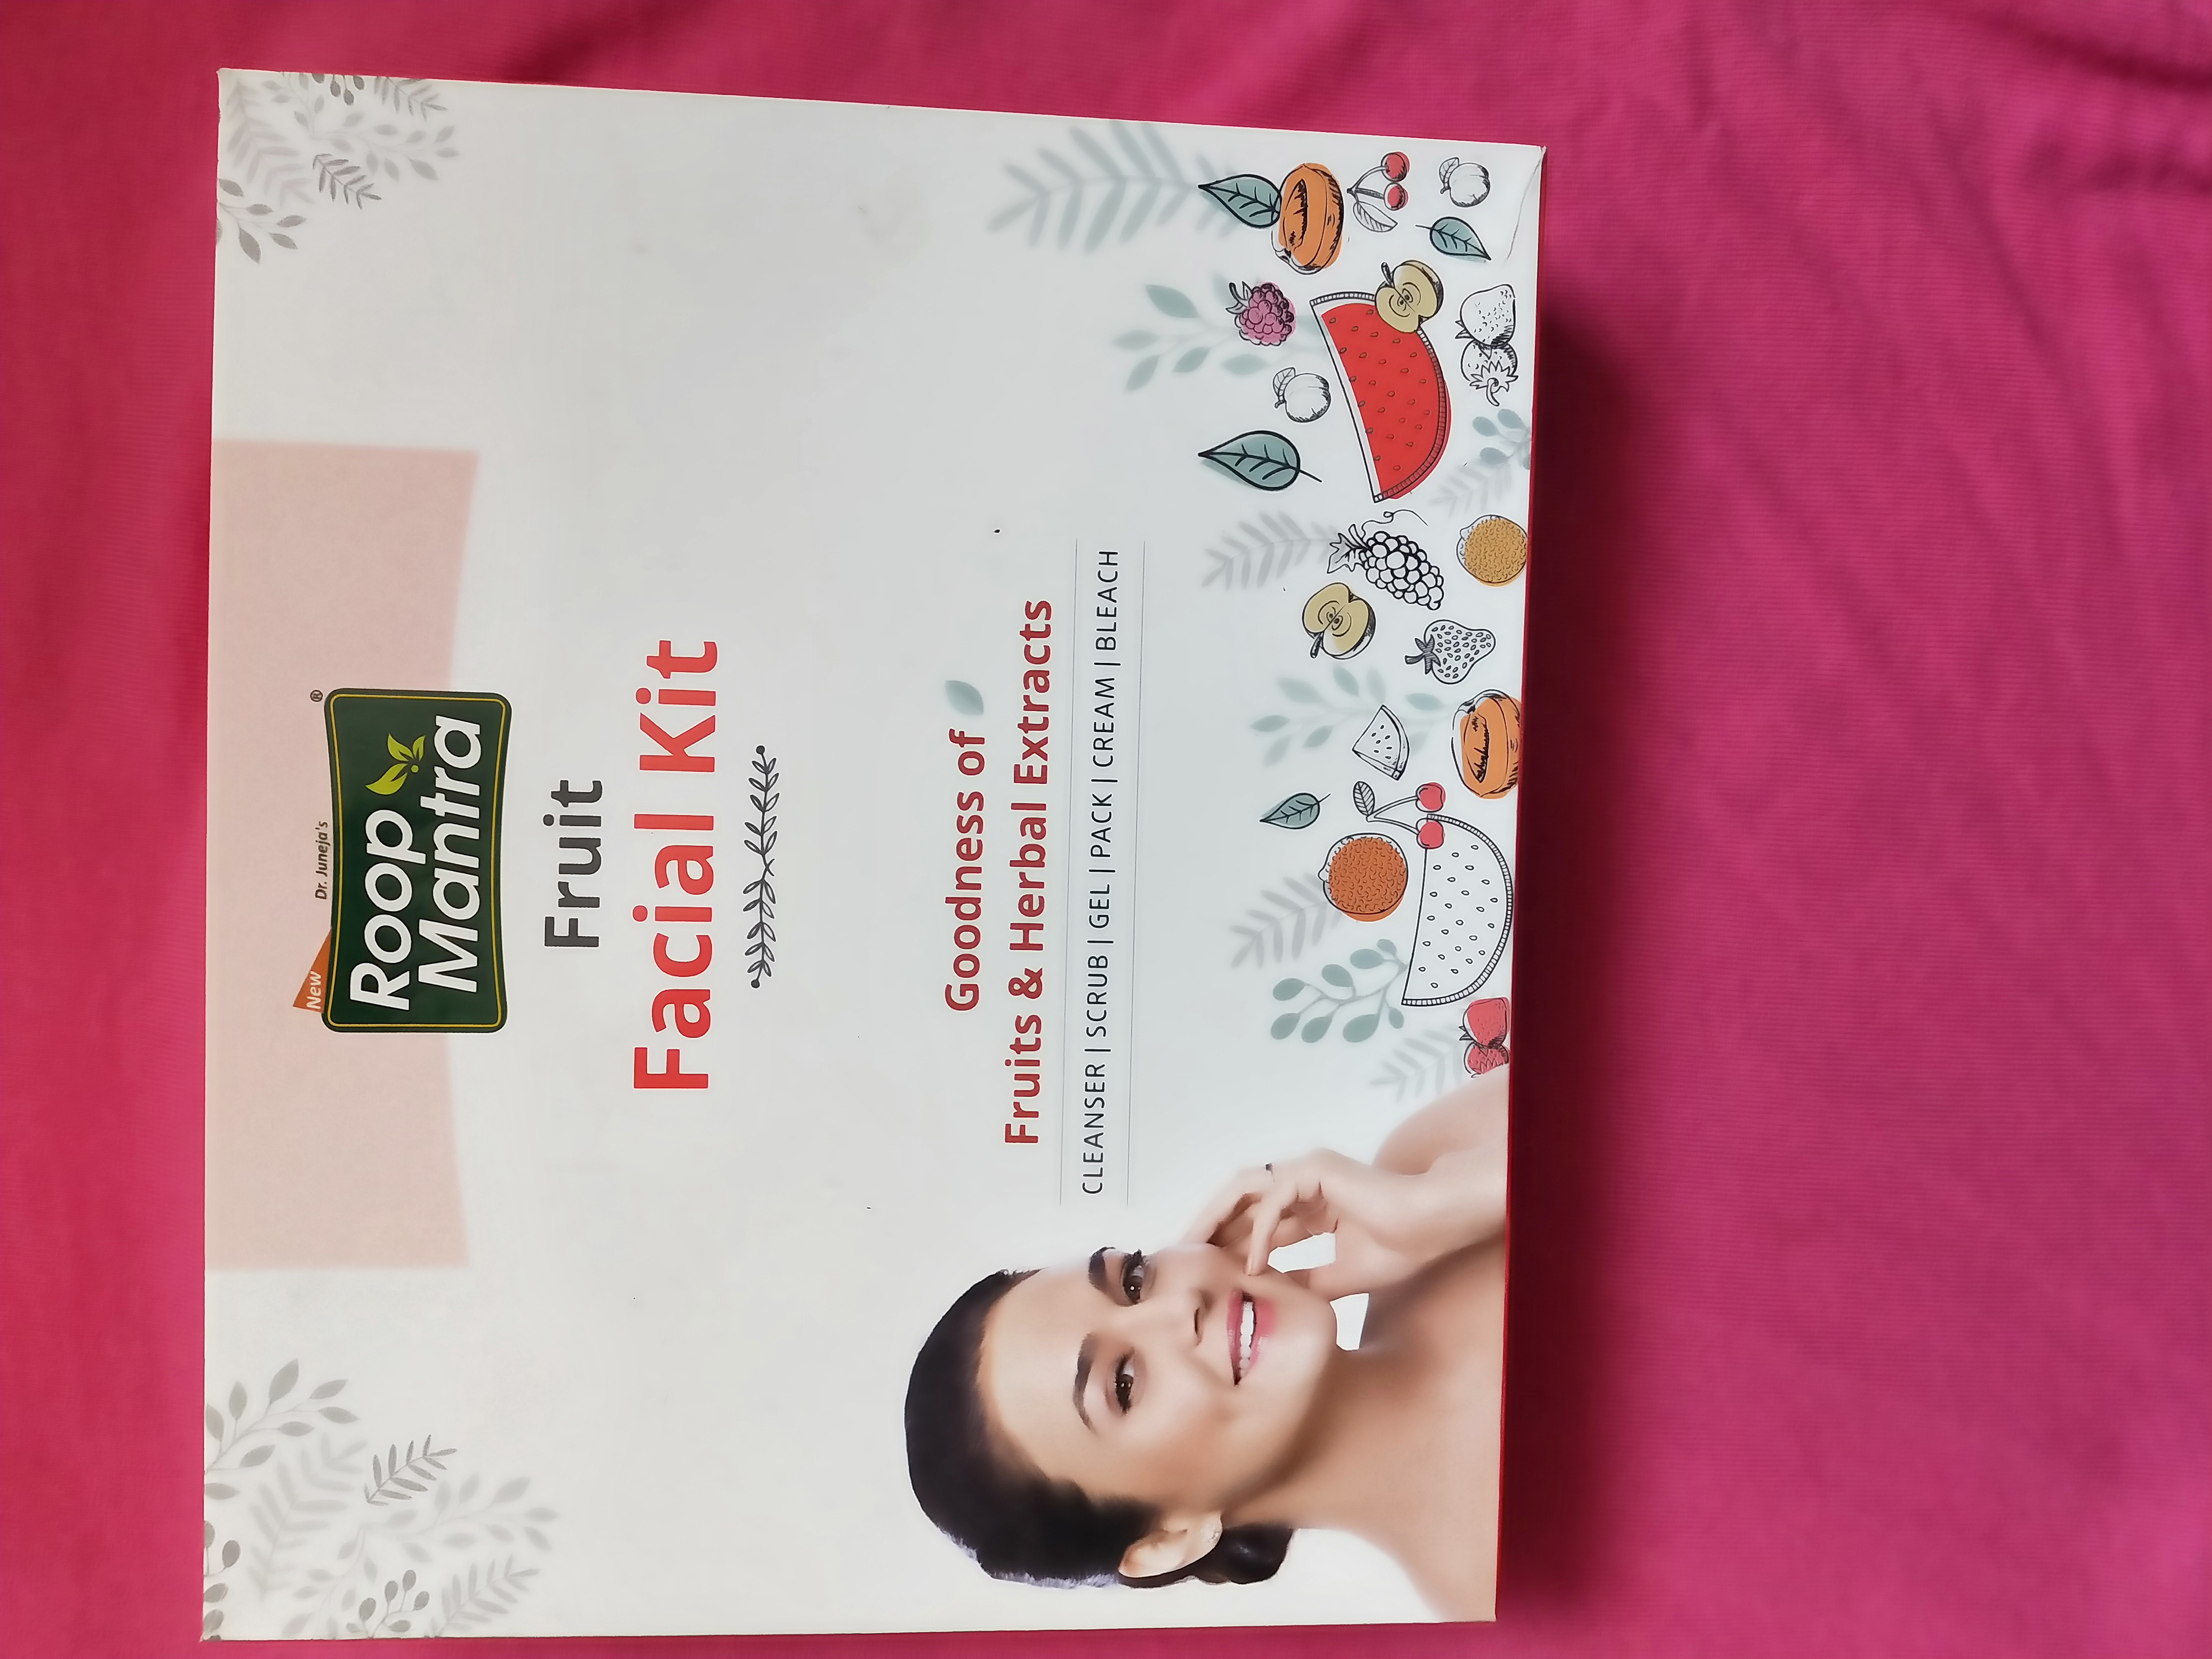 Roop Mantra Fruit Facial Kit-Facial at home at affordable price-By miss_hungry_soul-1